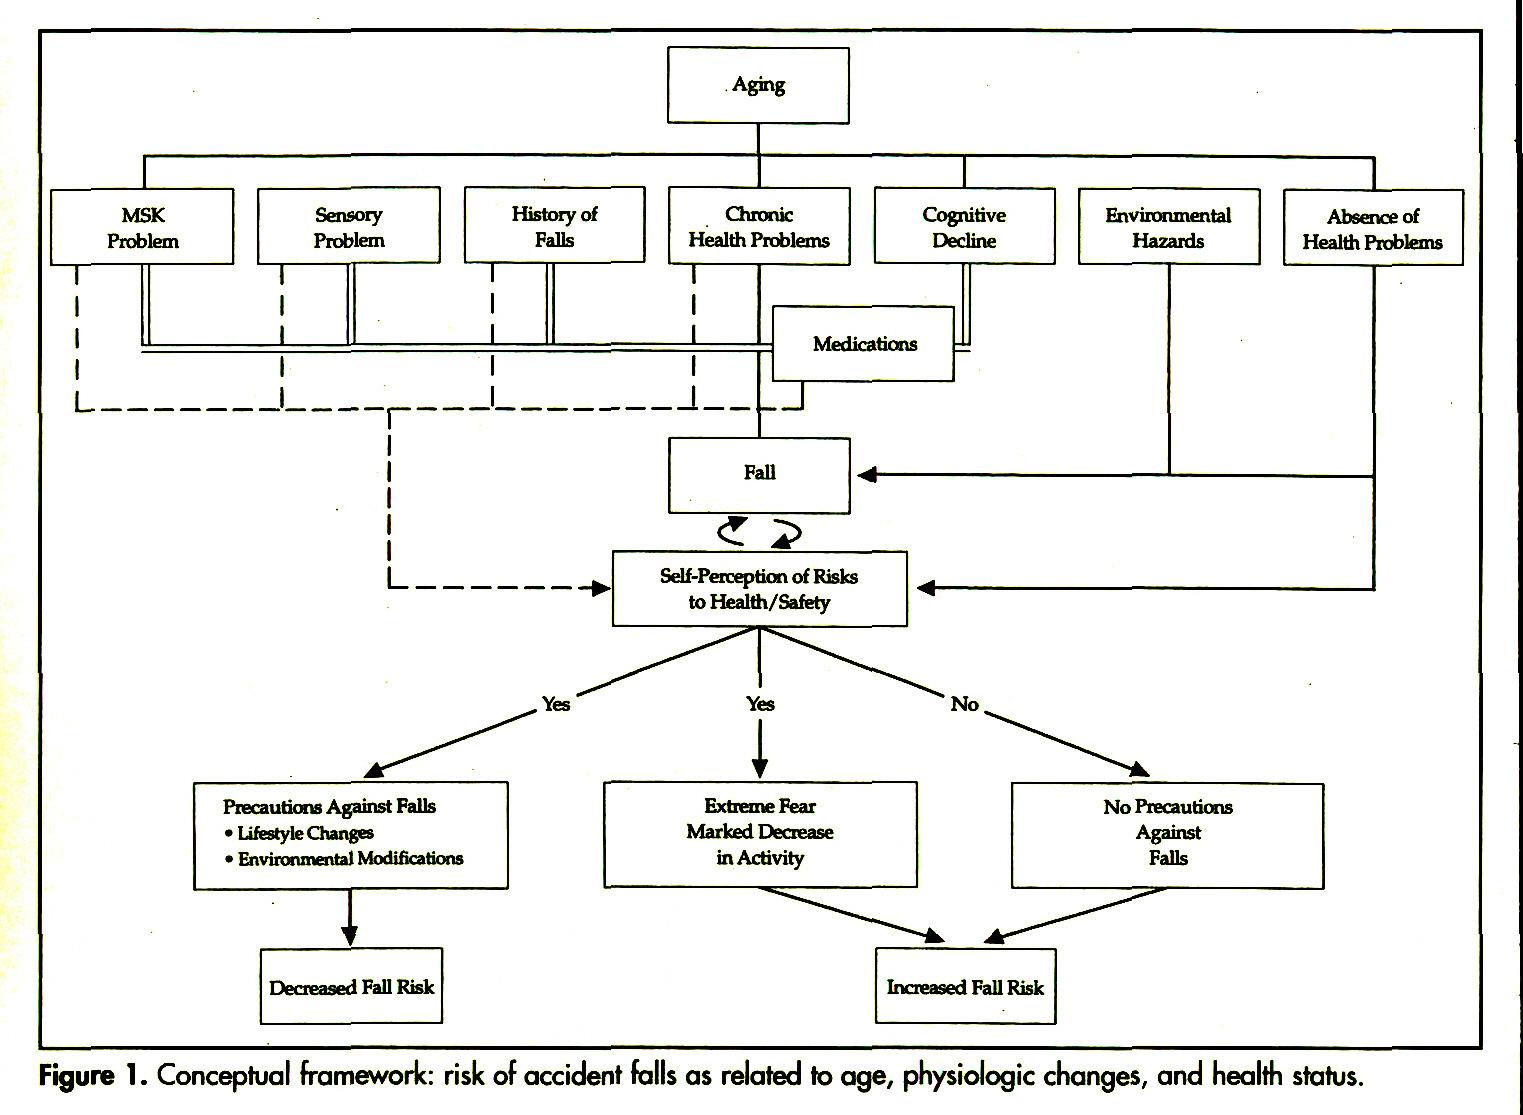 Figure 1 . Conceptual framework: risk of accident falls as related to age, physiologic changes, and health status.